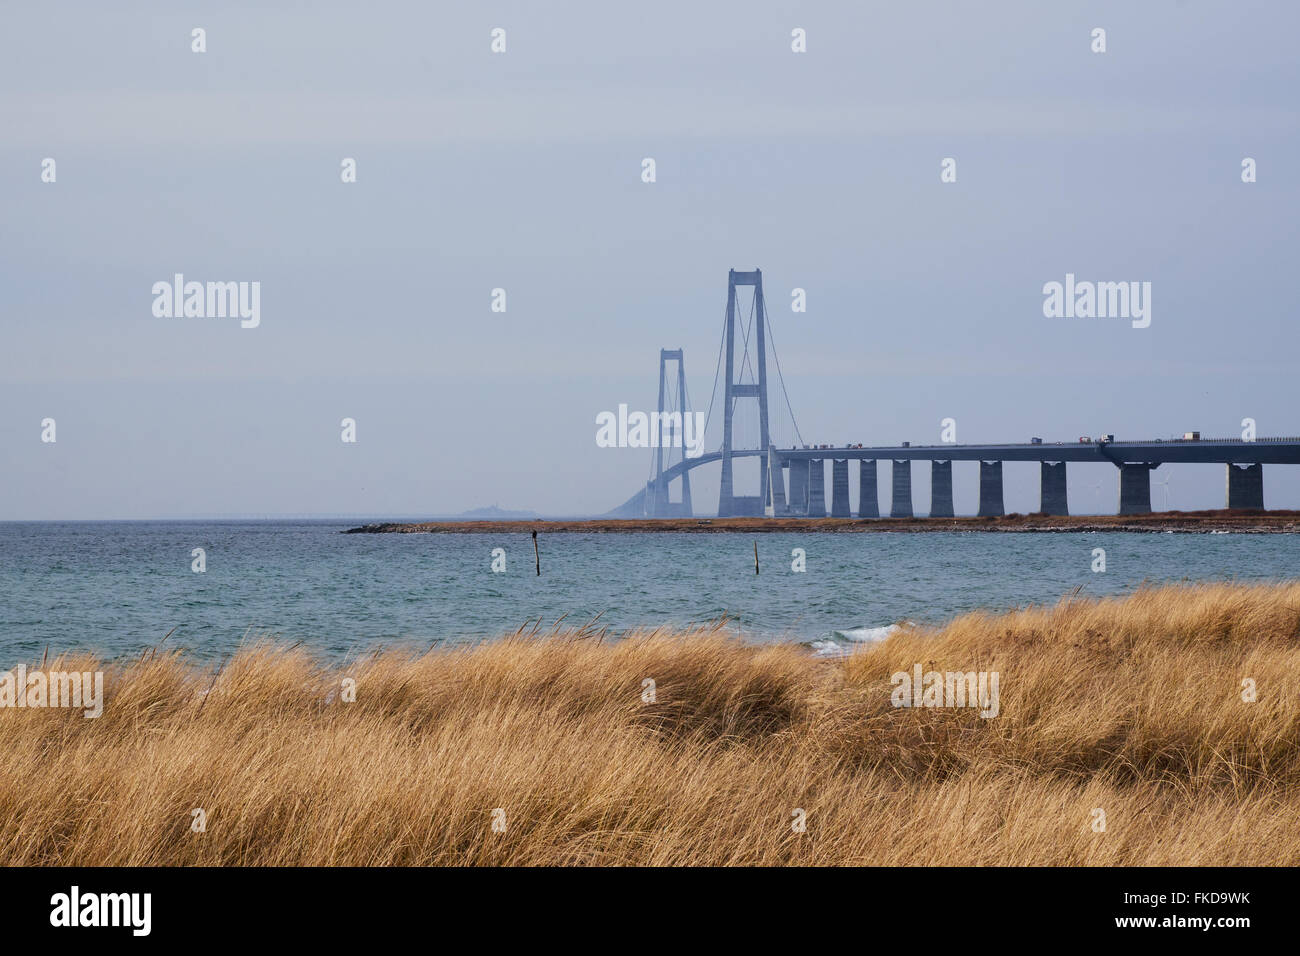 Great belt bridge seen from the Sealand side with grassy coastline in the front - Stock Image